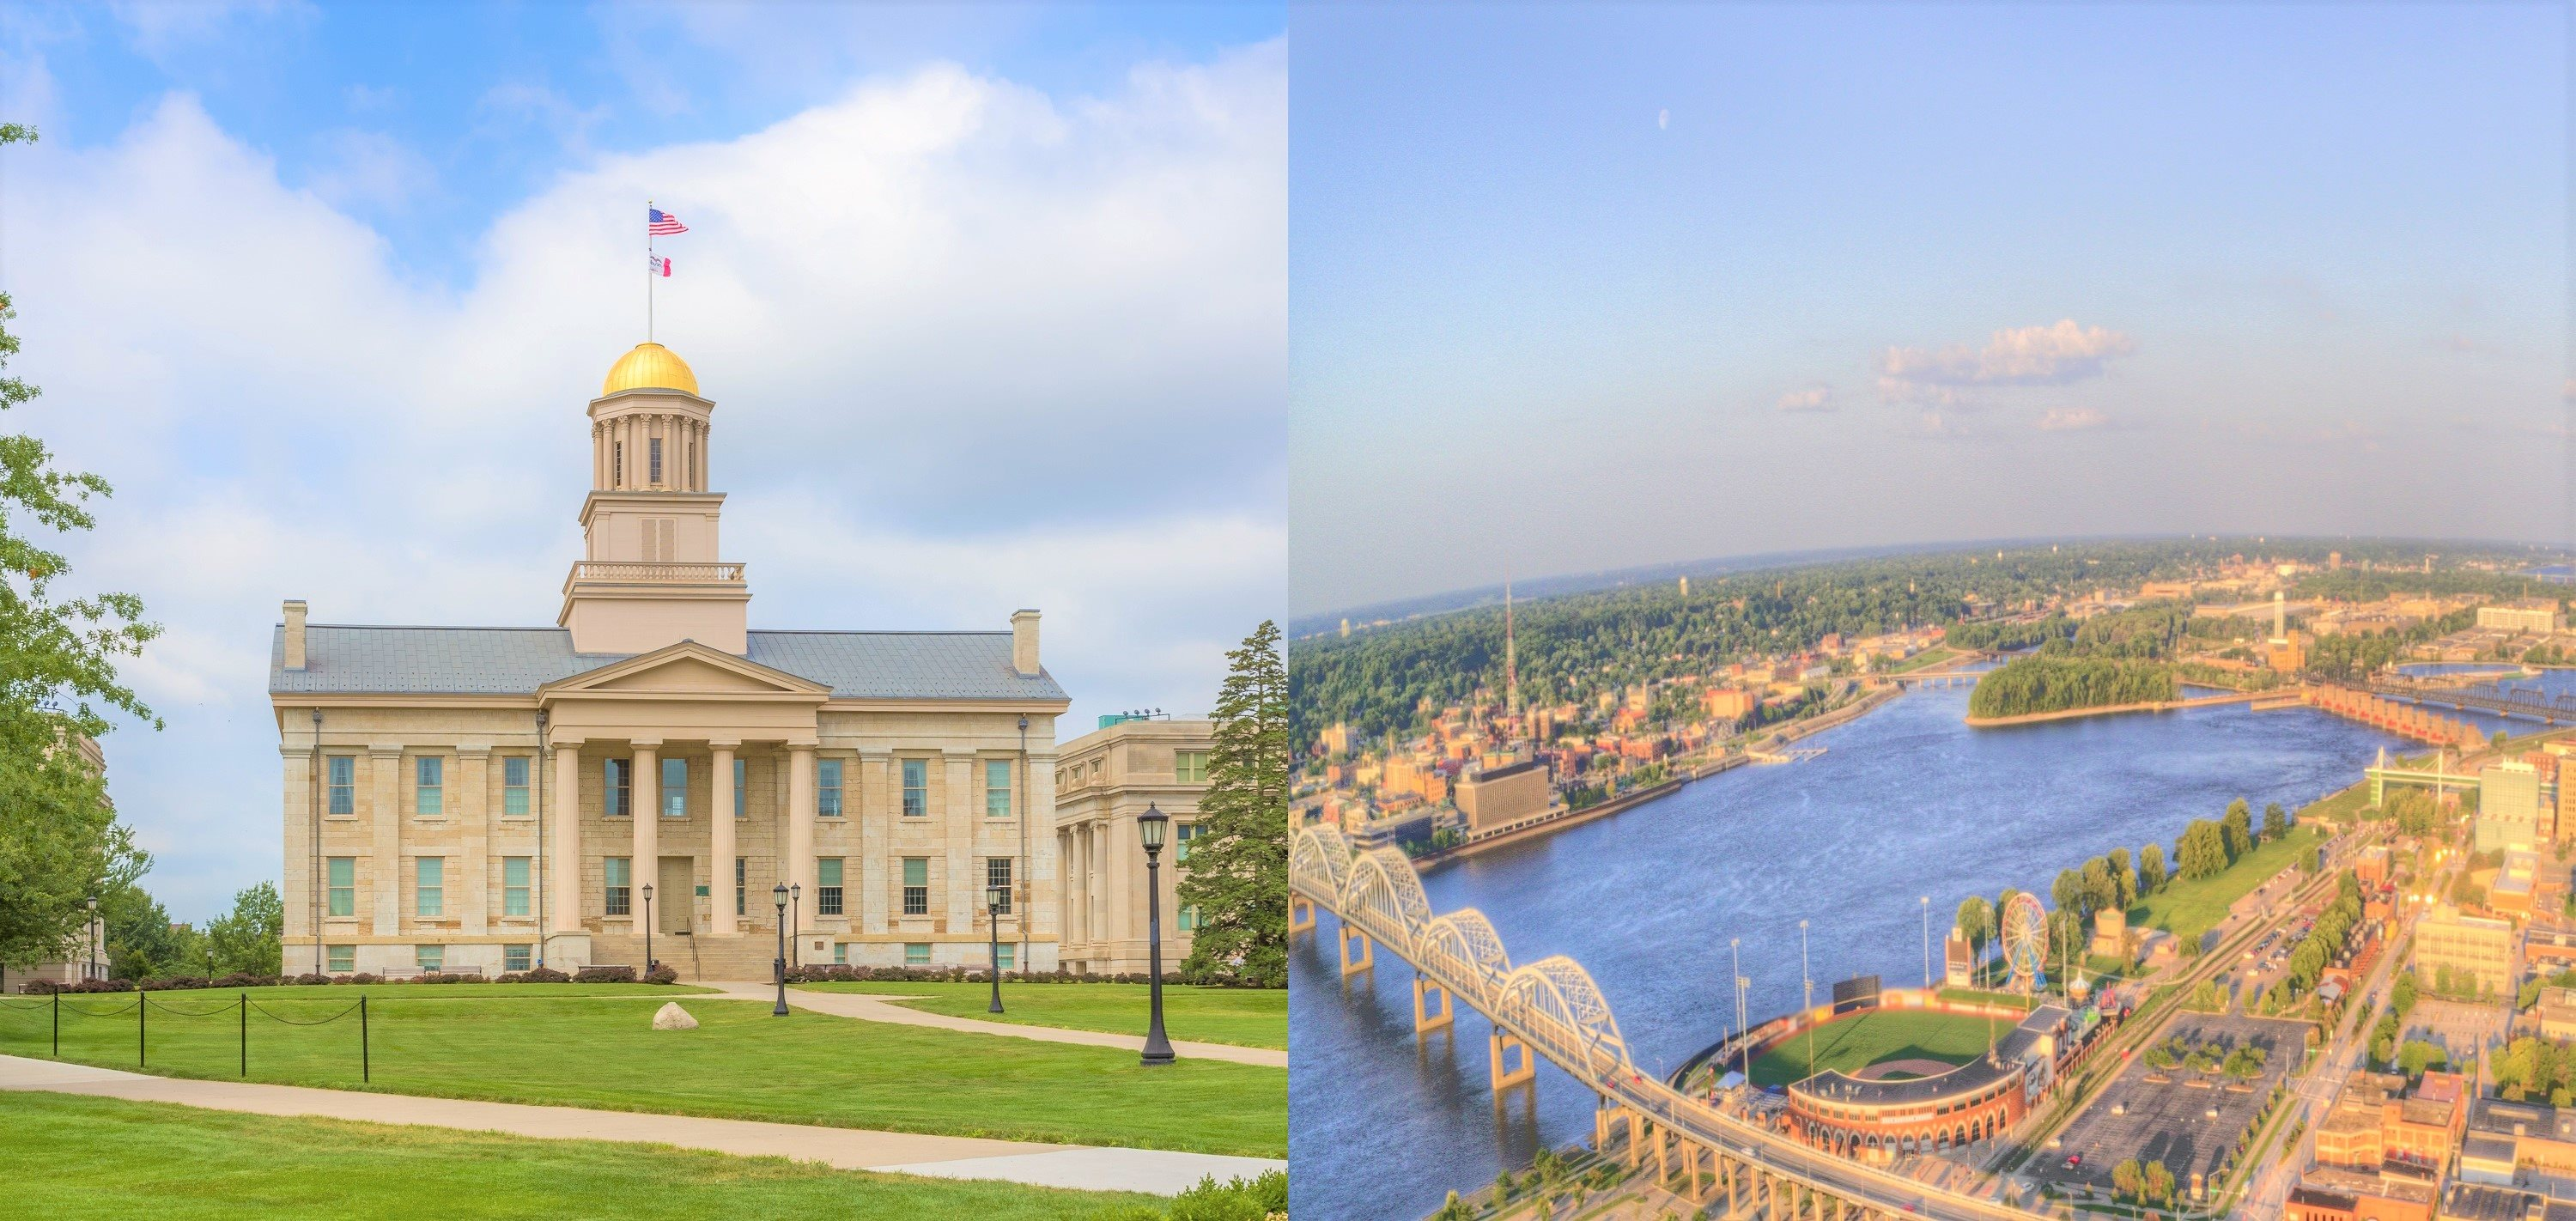 Iowa City Old Capital Building and Davenport Mississippi River